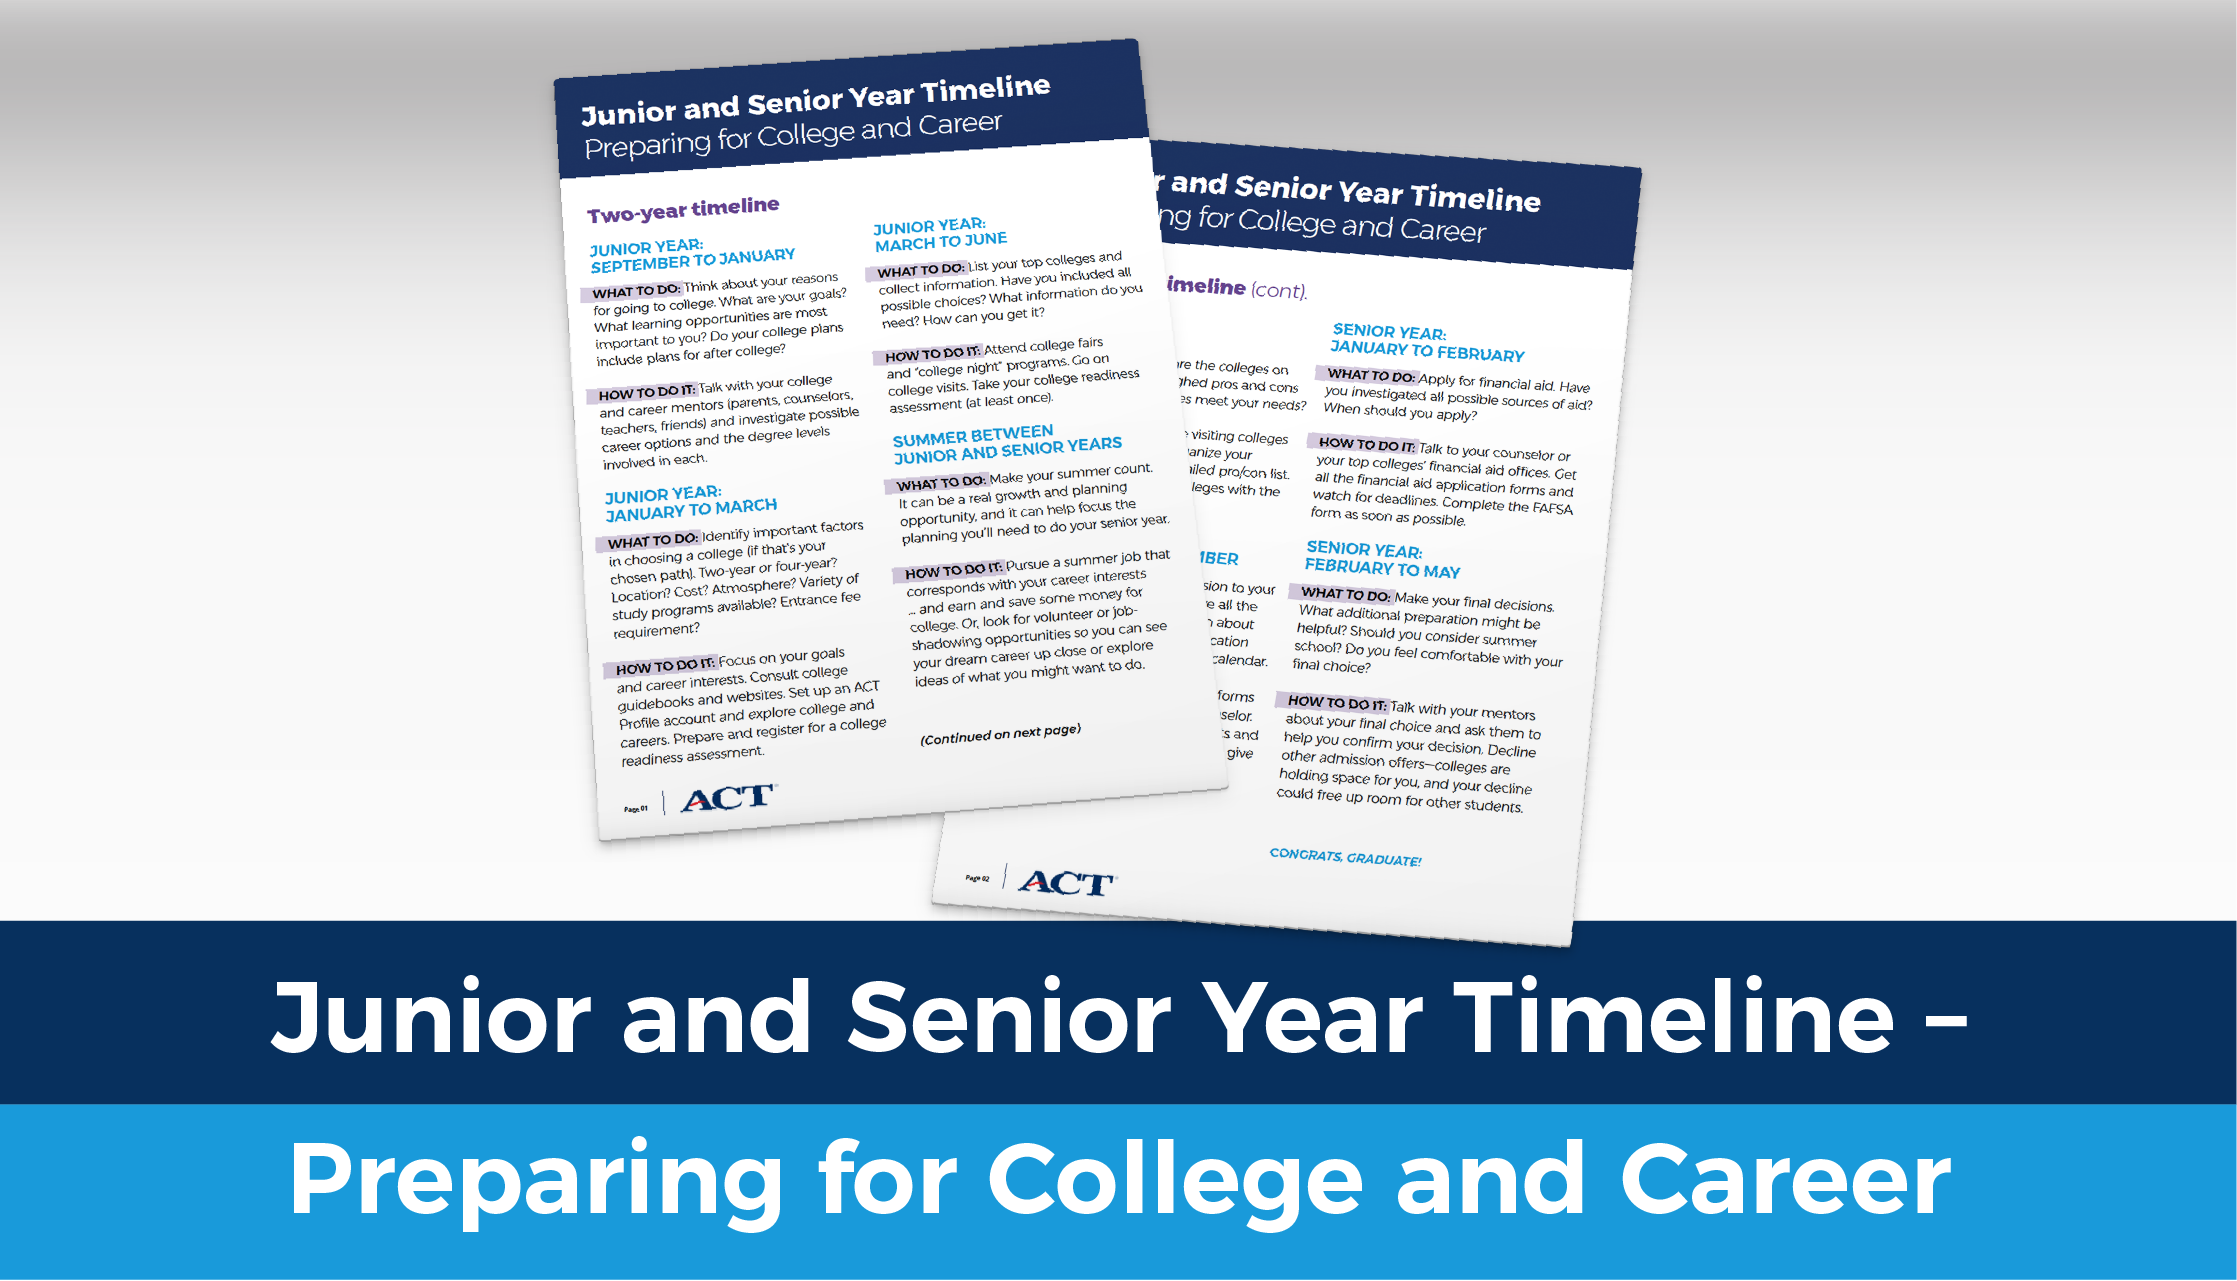 Junior and Senior Year Timeline - Preparing for College and Career